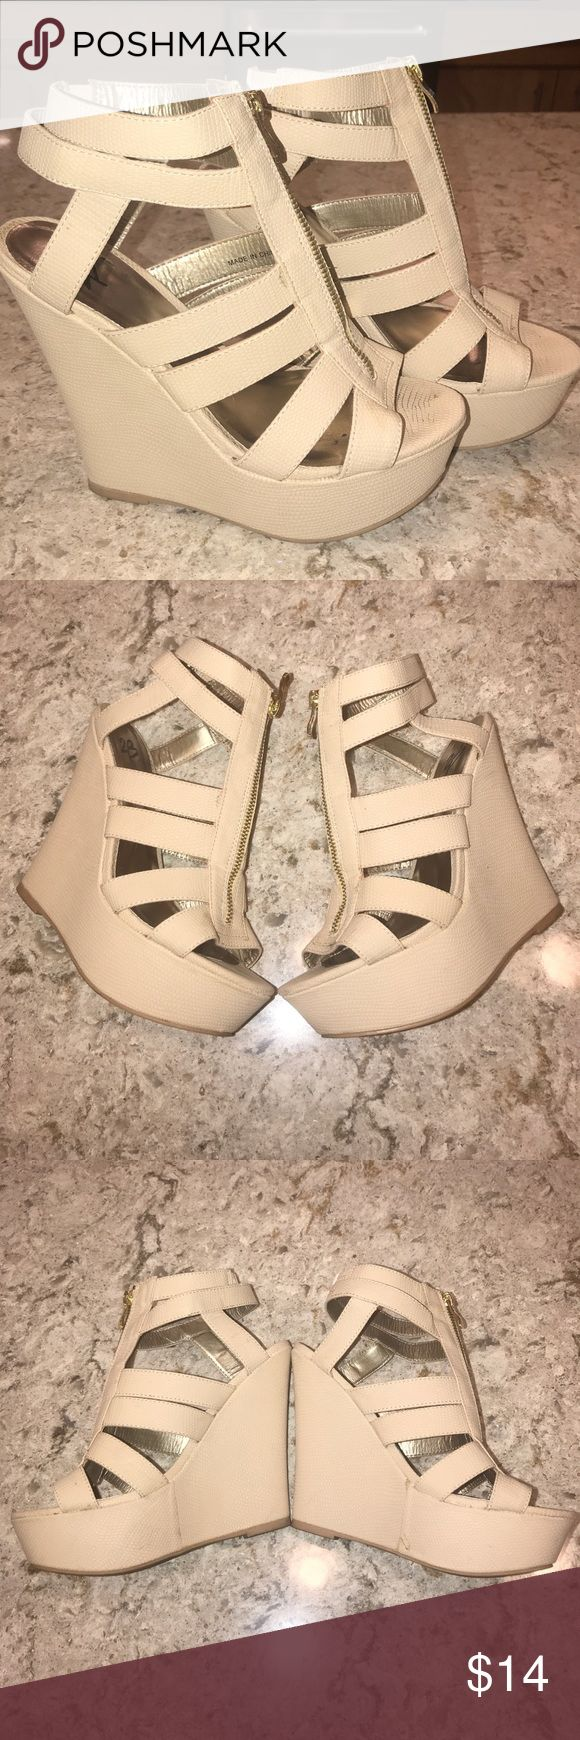 Strap Cream Wedge Heel Sandals Strappy Cream Wedge Heel Sandals. Size 8. True to size. Good condition. Some wear shown on the inside of the shoes and on the soles. Shoes Wedges